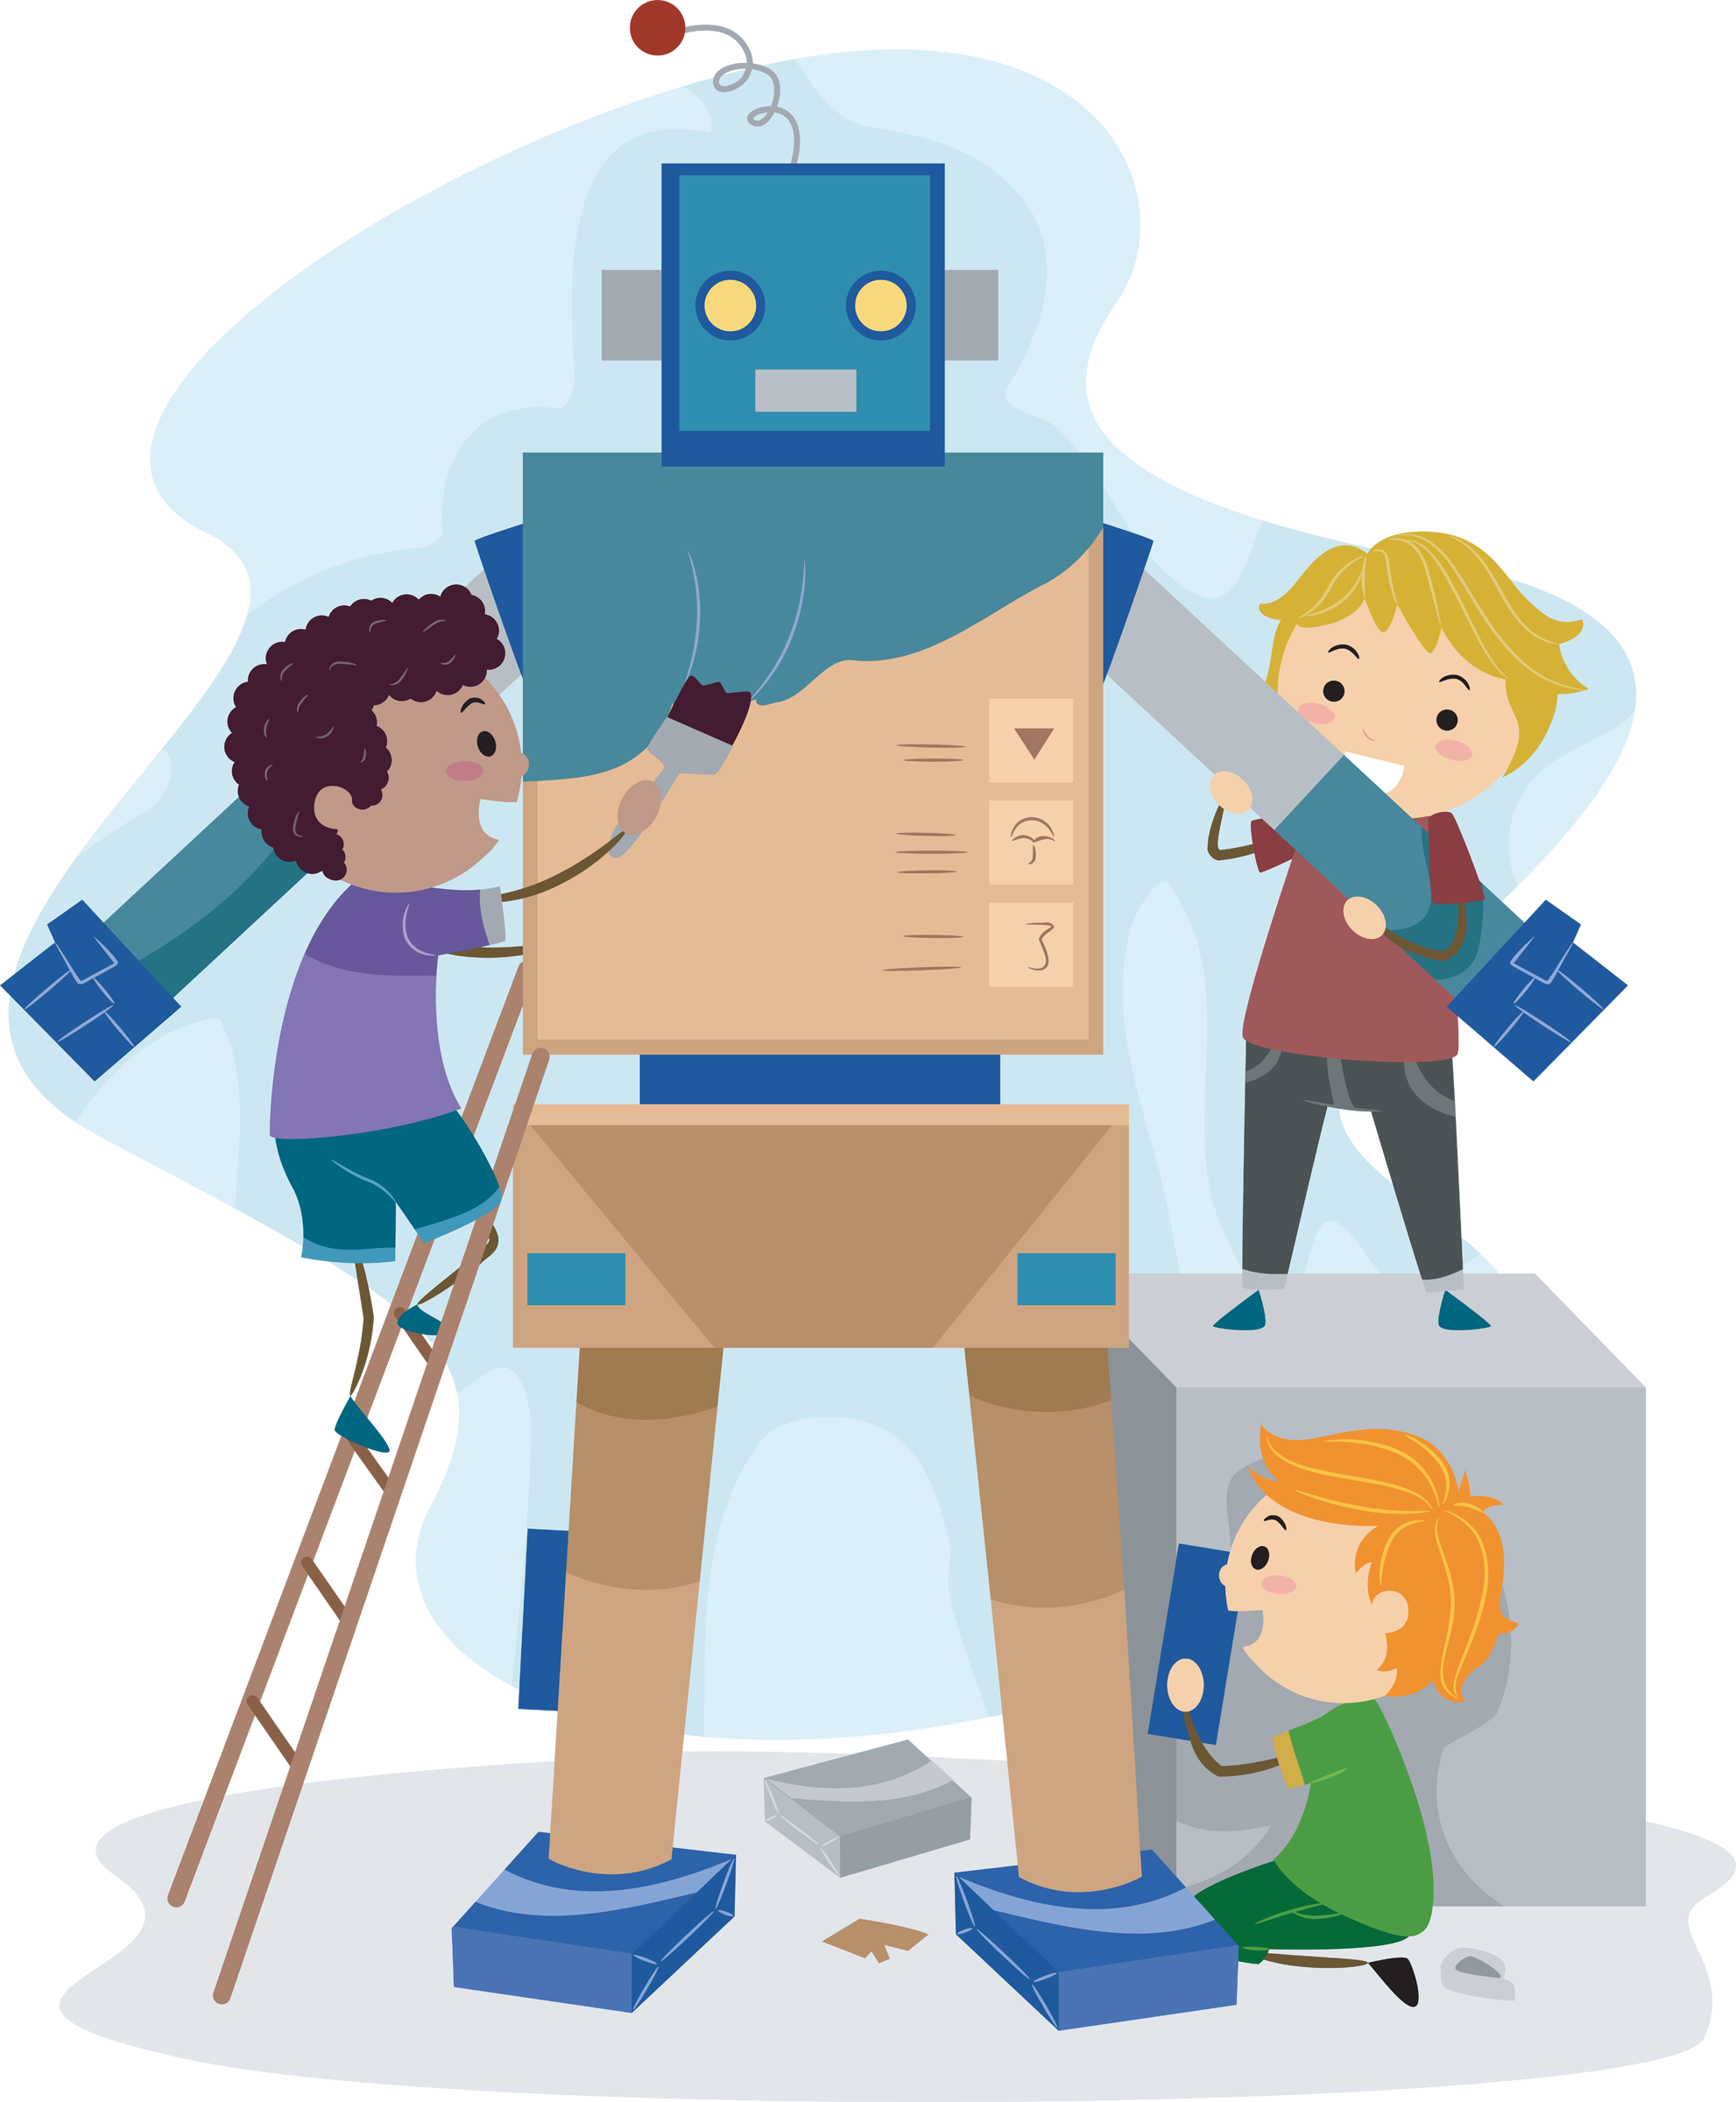 Stem education and the. Environment clipart conducive learning environment